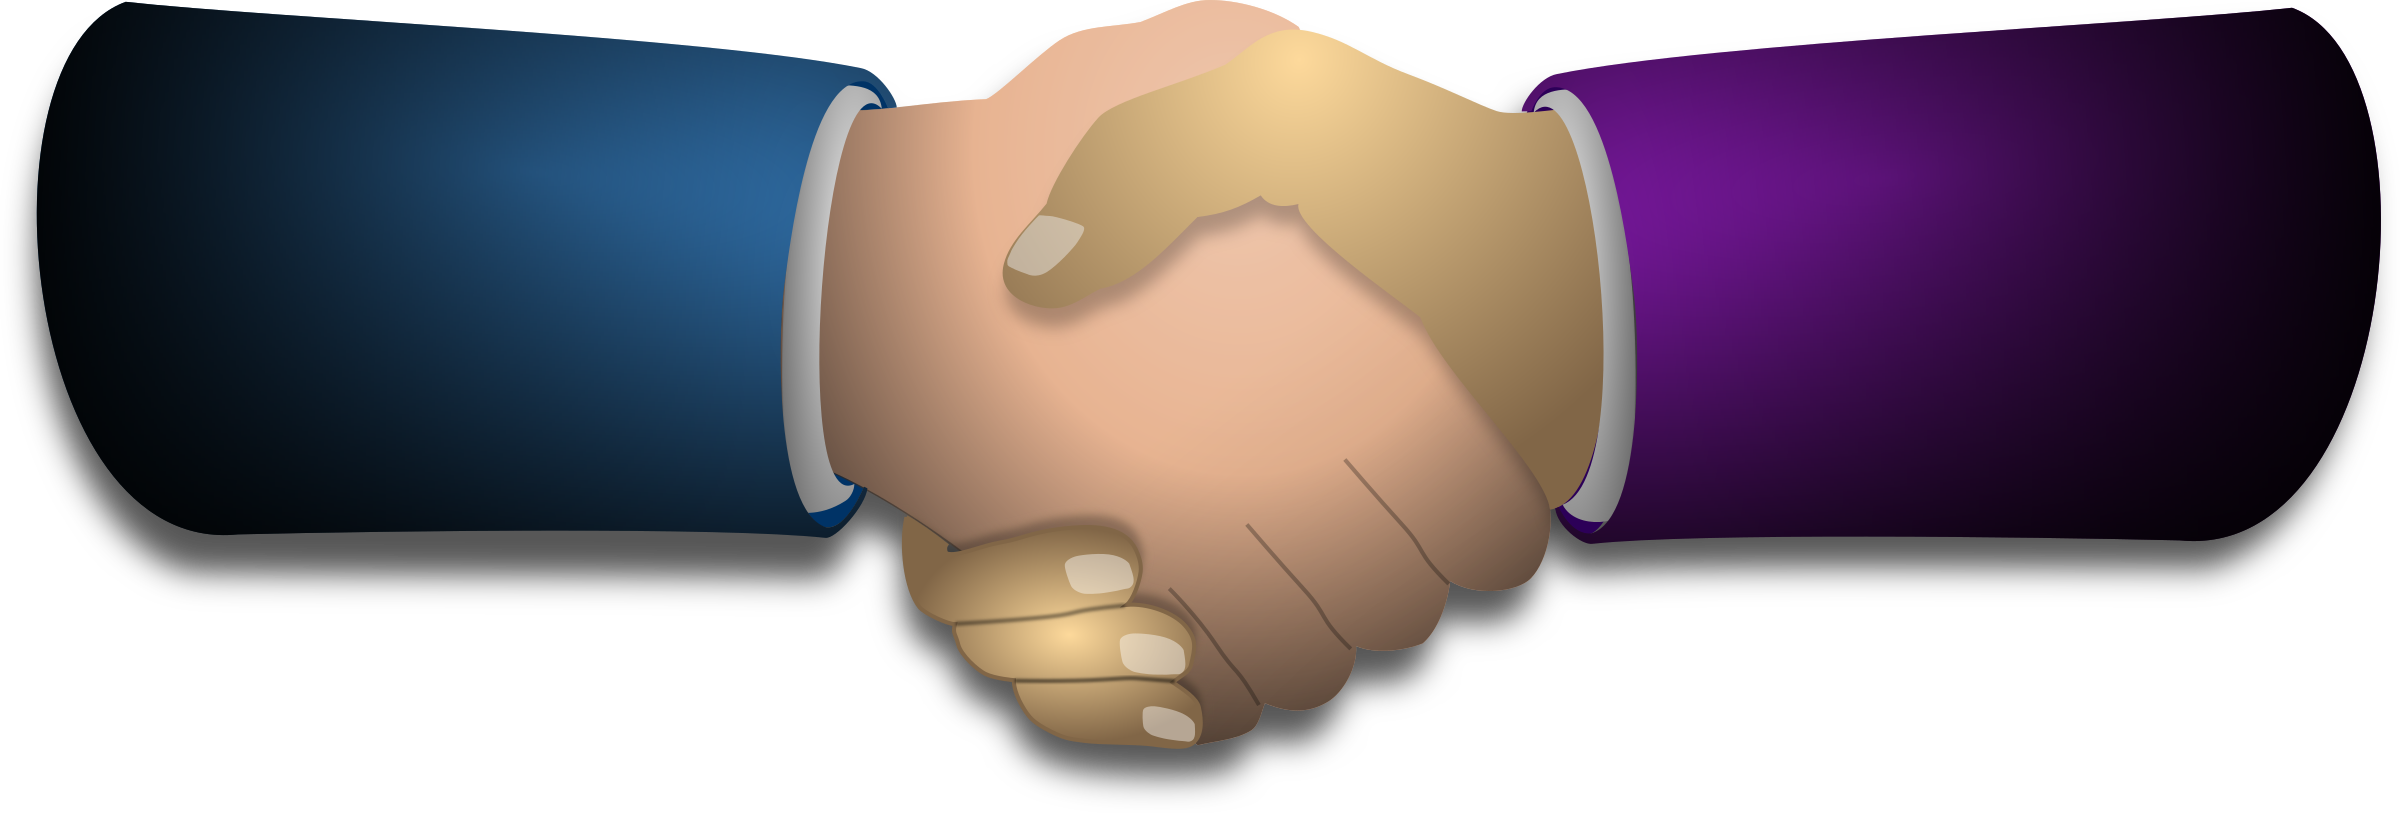 Handshake Clipart (5616) Free Clipart Images — Clipartwork.